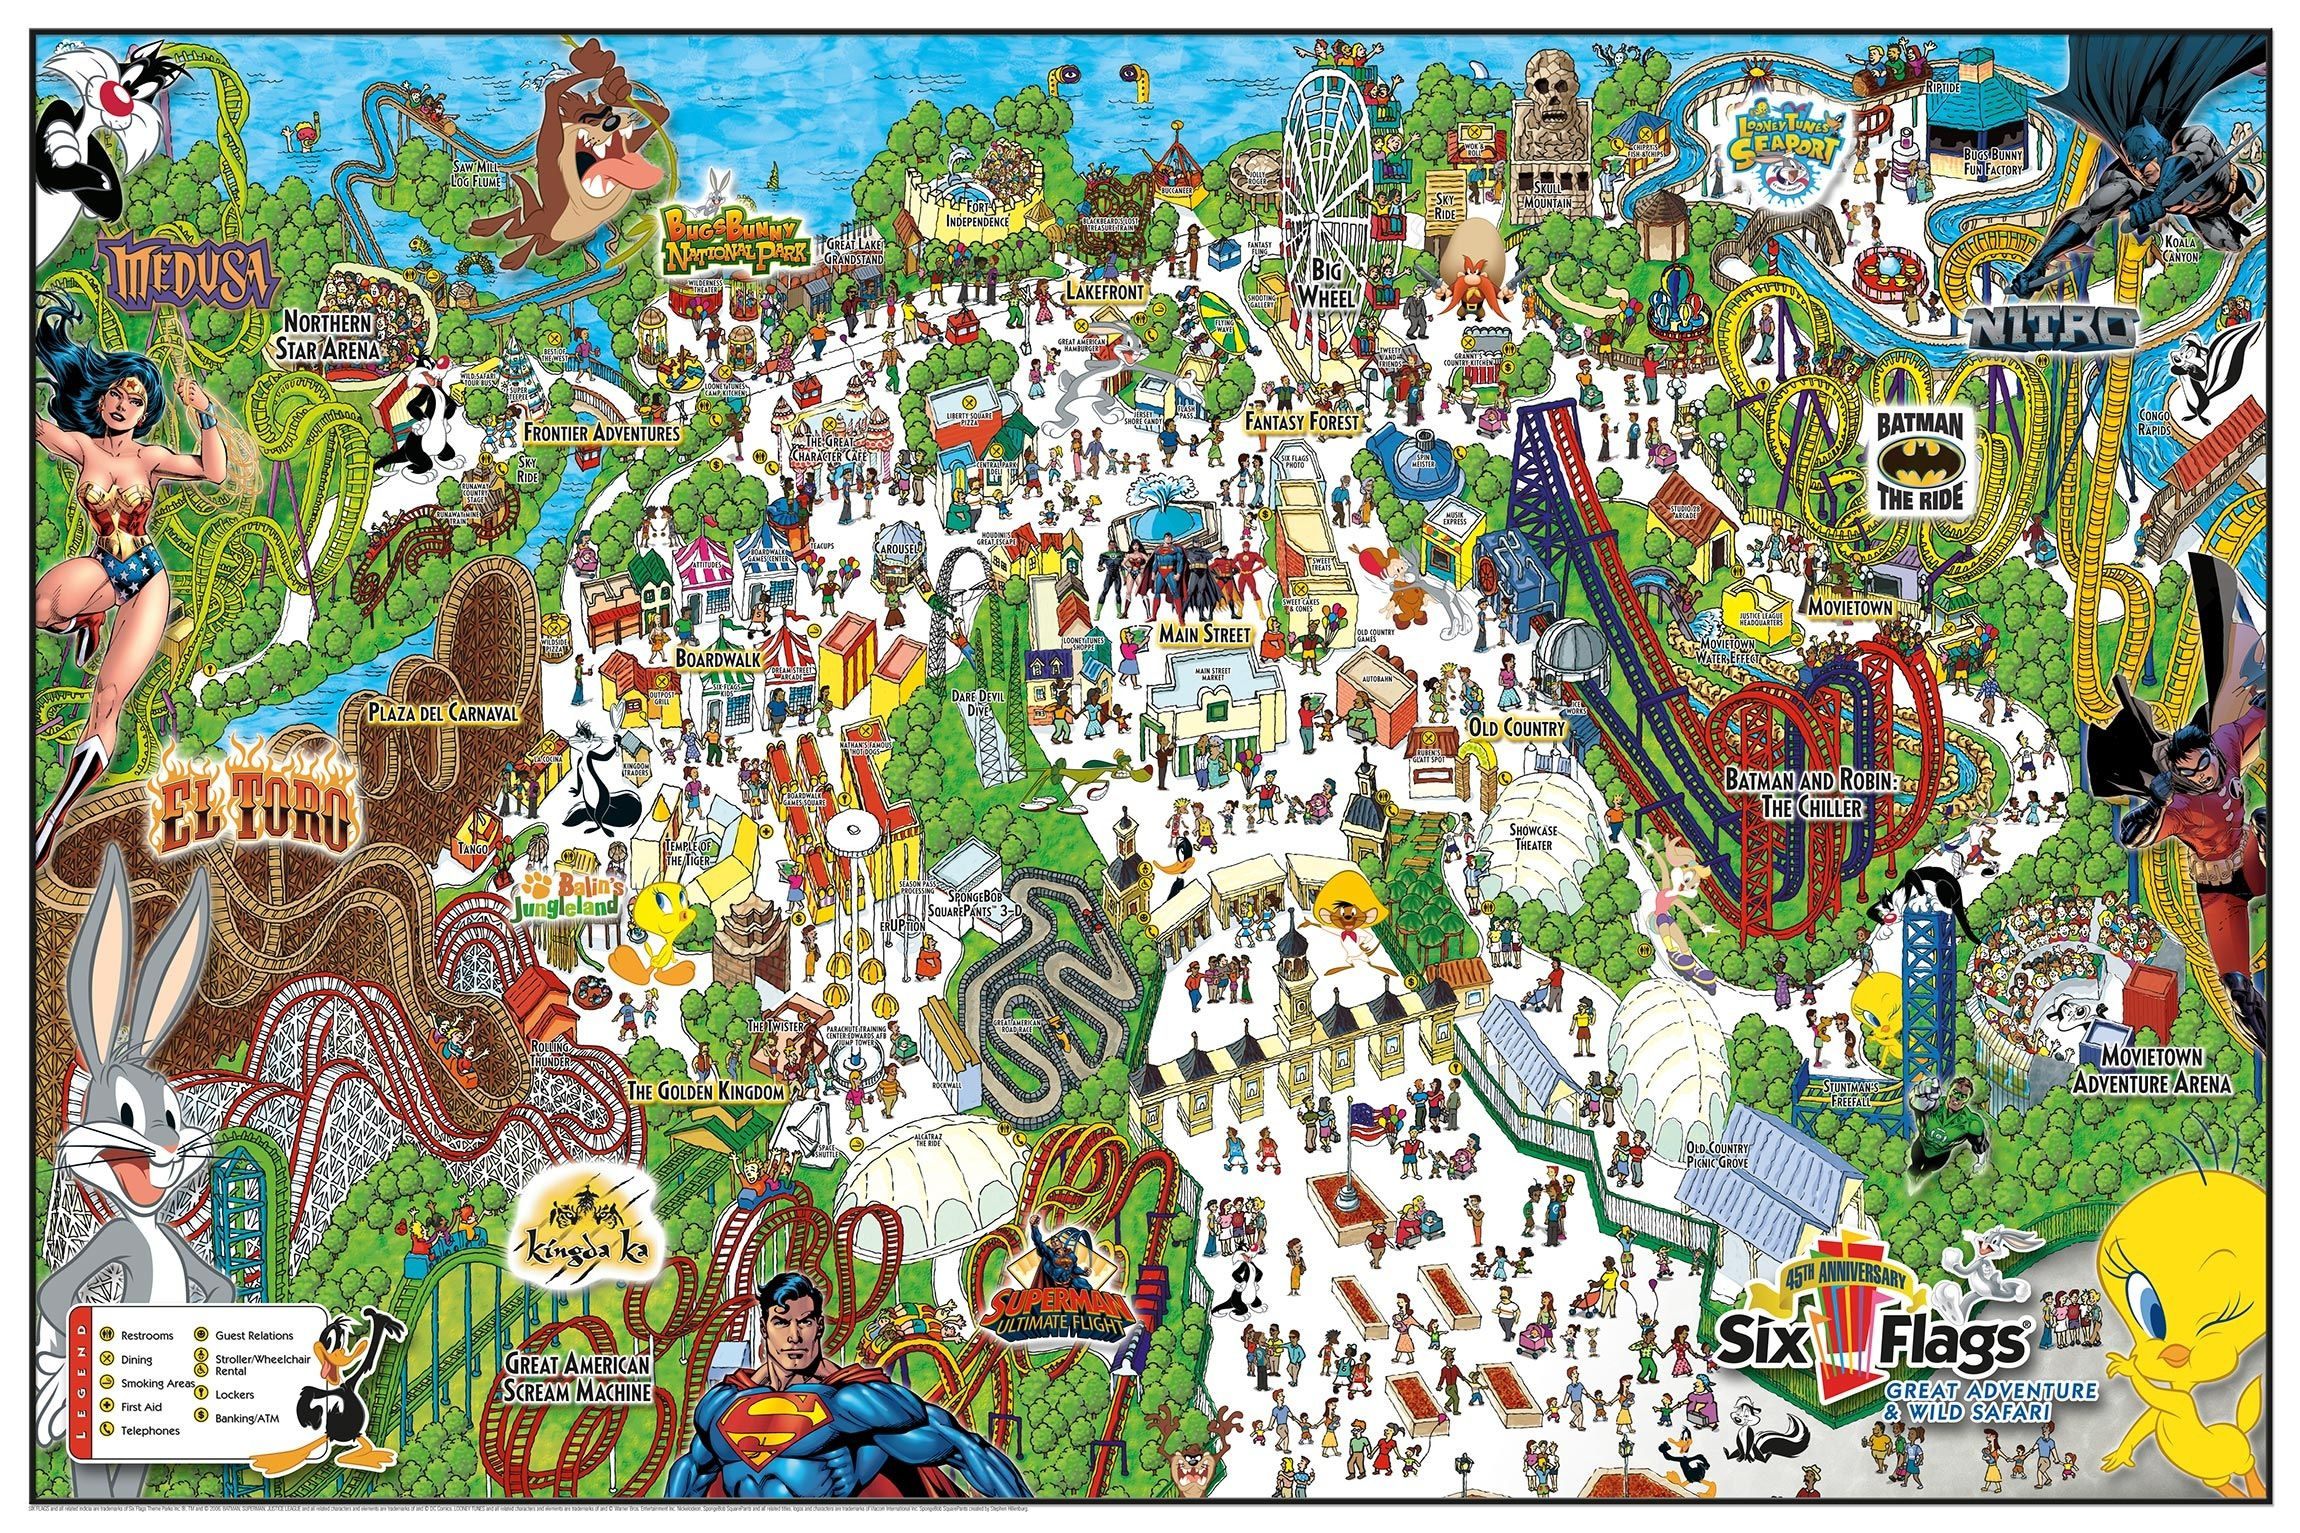 Six Flags Great Adventure Wild Safari Map